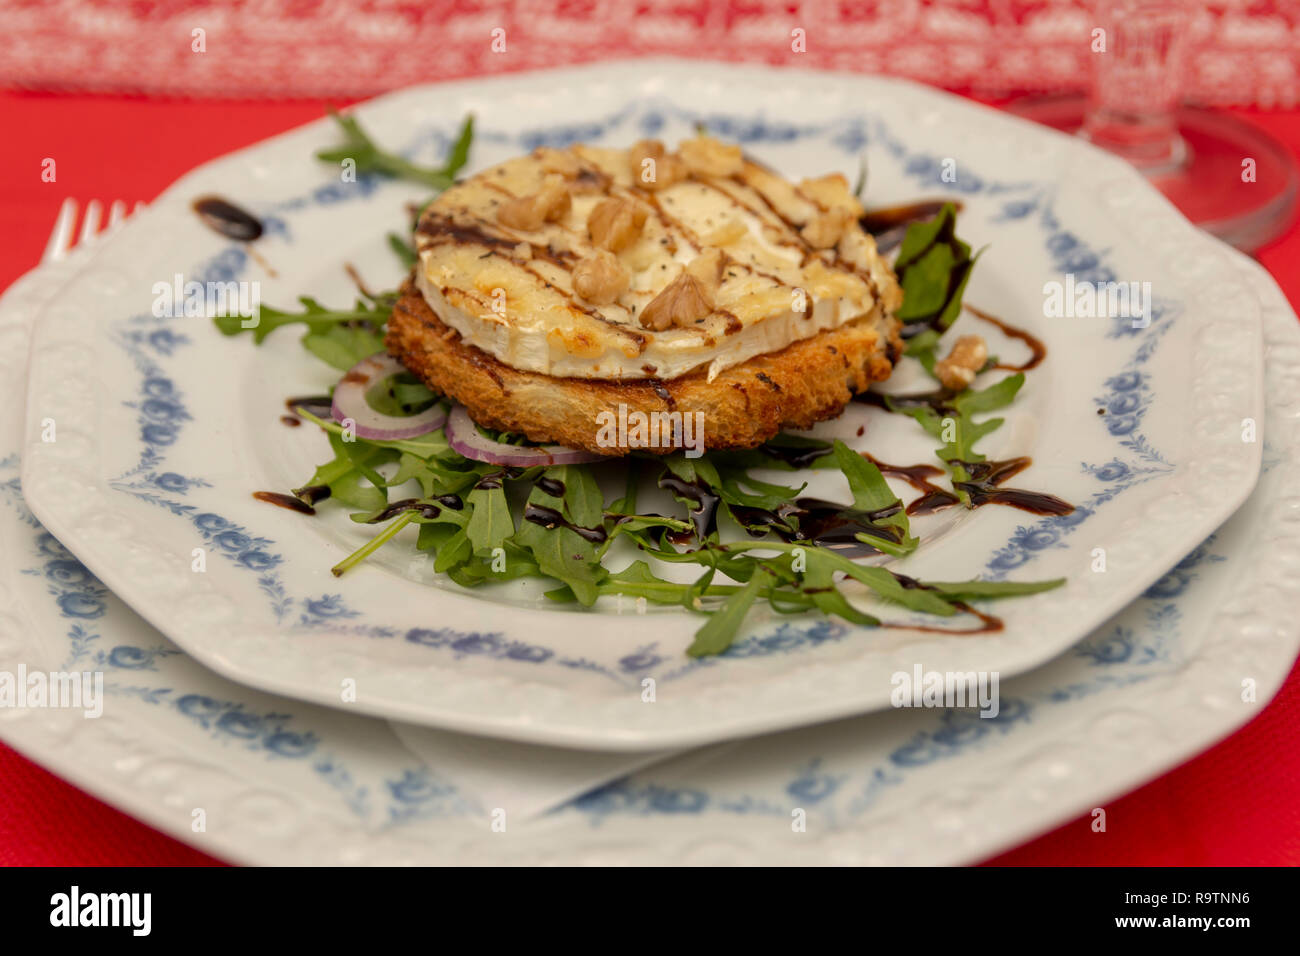 Plate with a roasted bred with a slice of chevre cheese and on top nuts and honey. - Stock Image